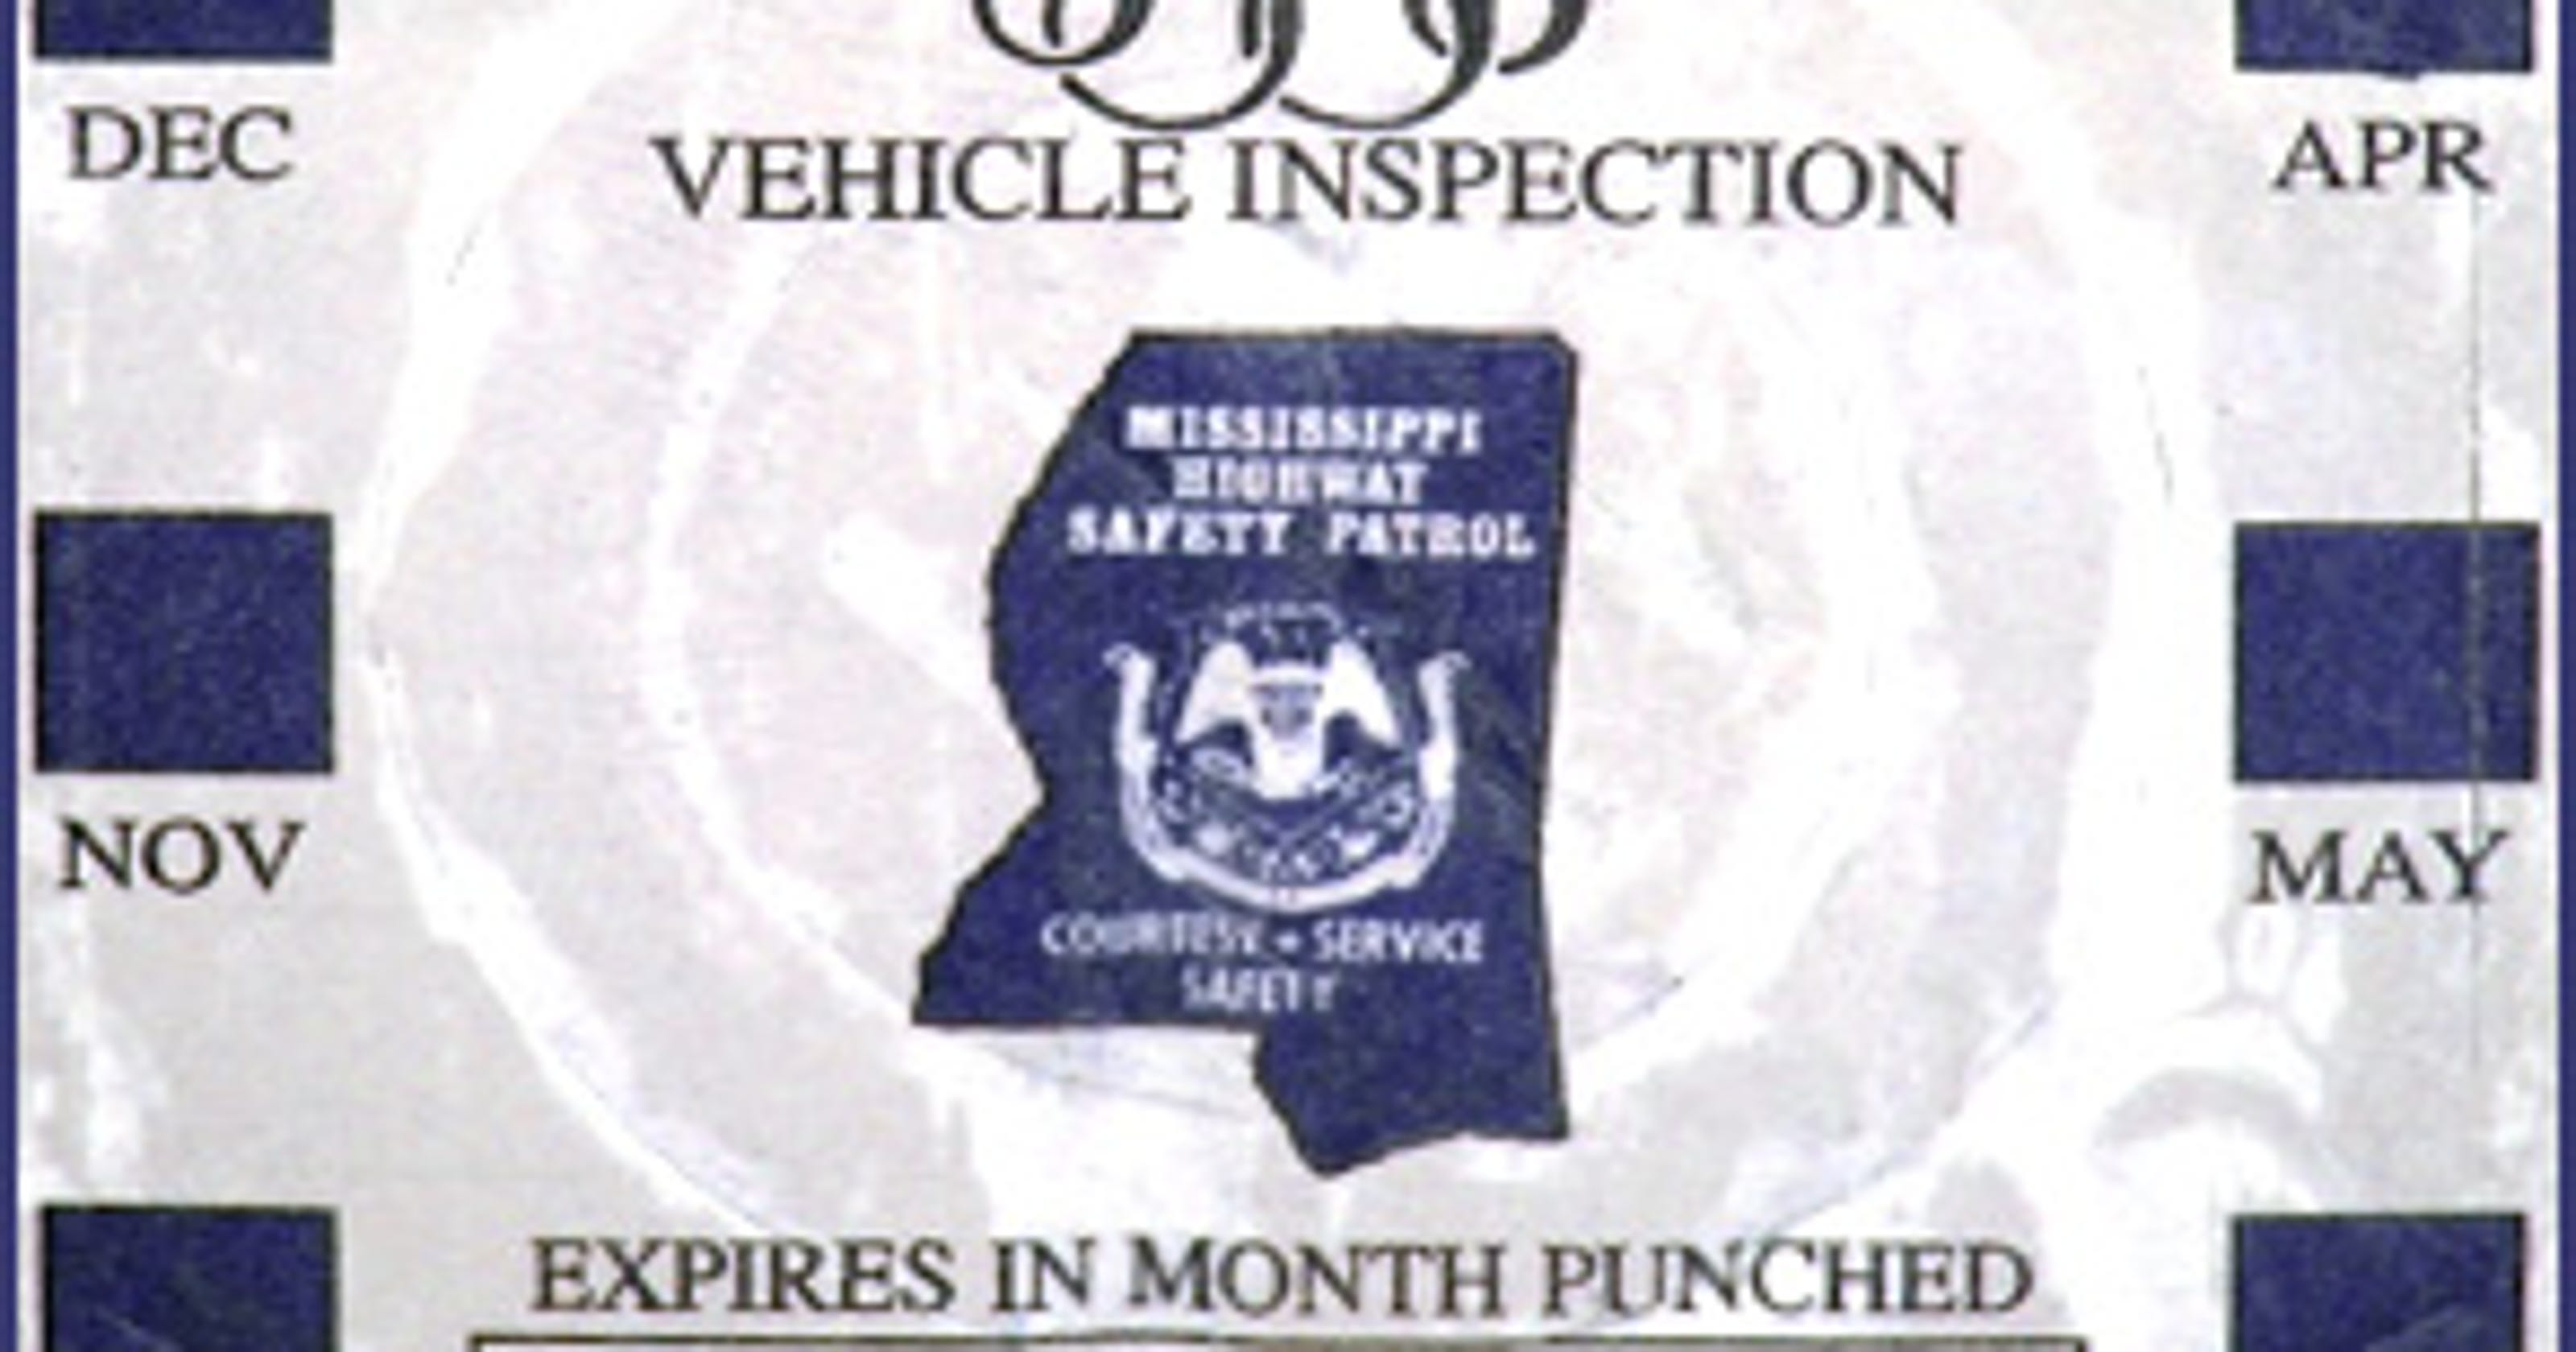 Bye-bye, vehicle inspection stickers